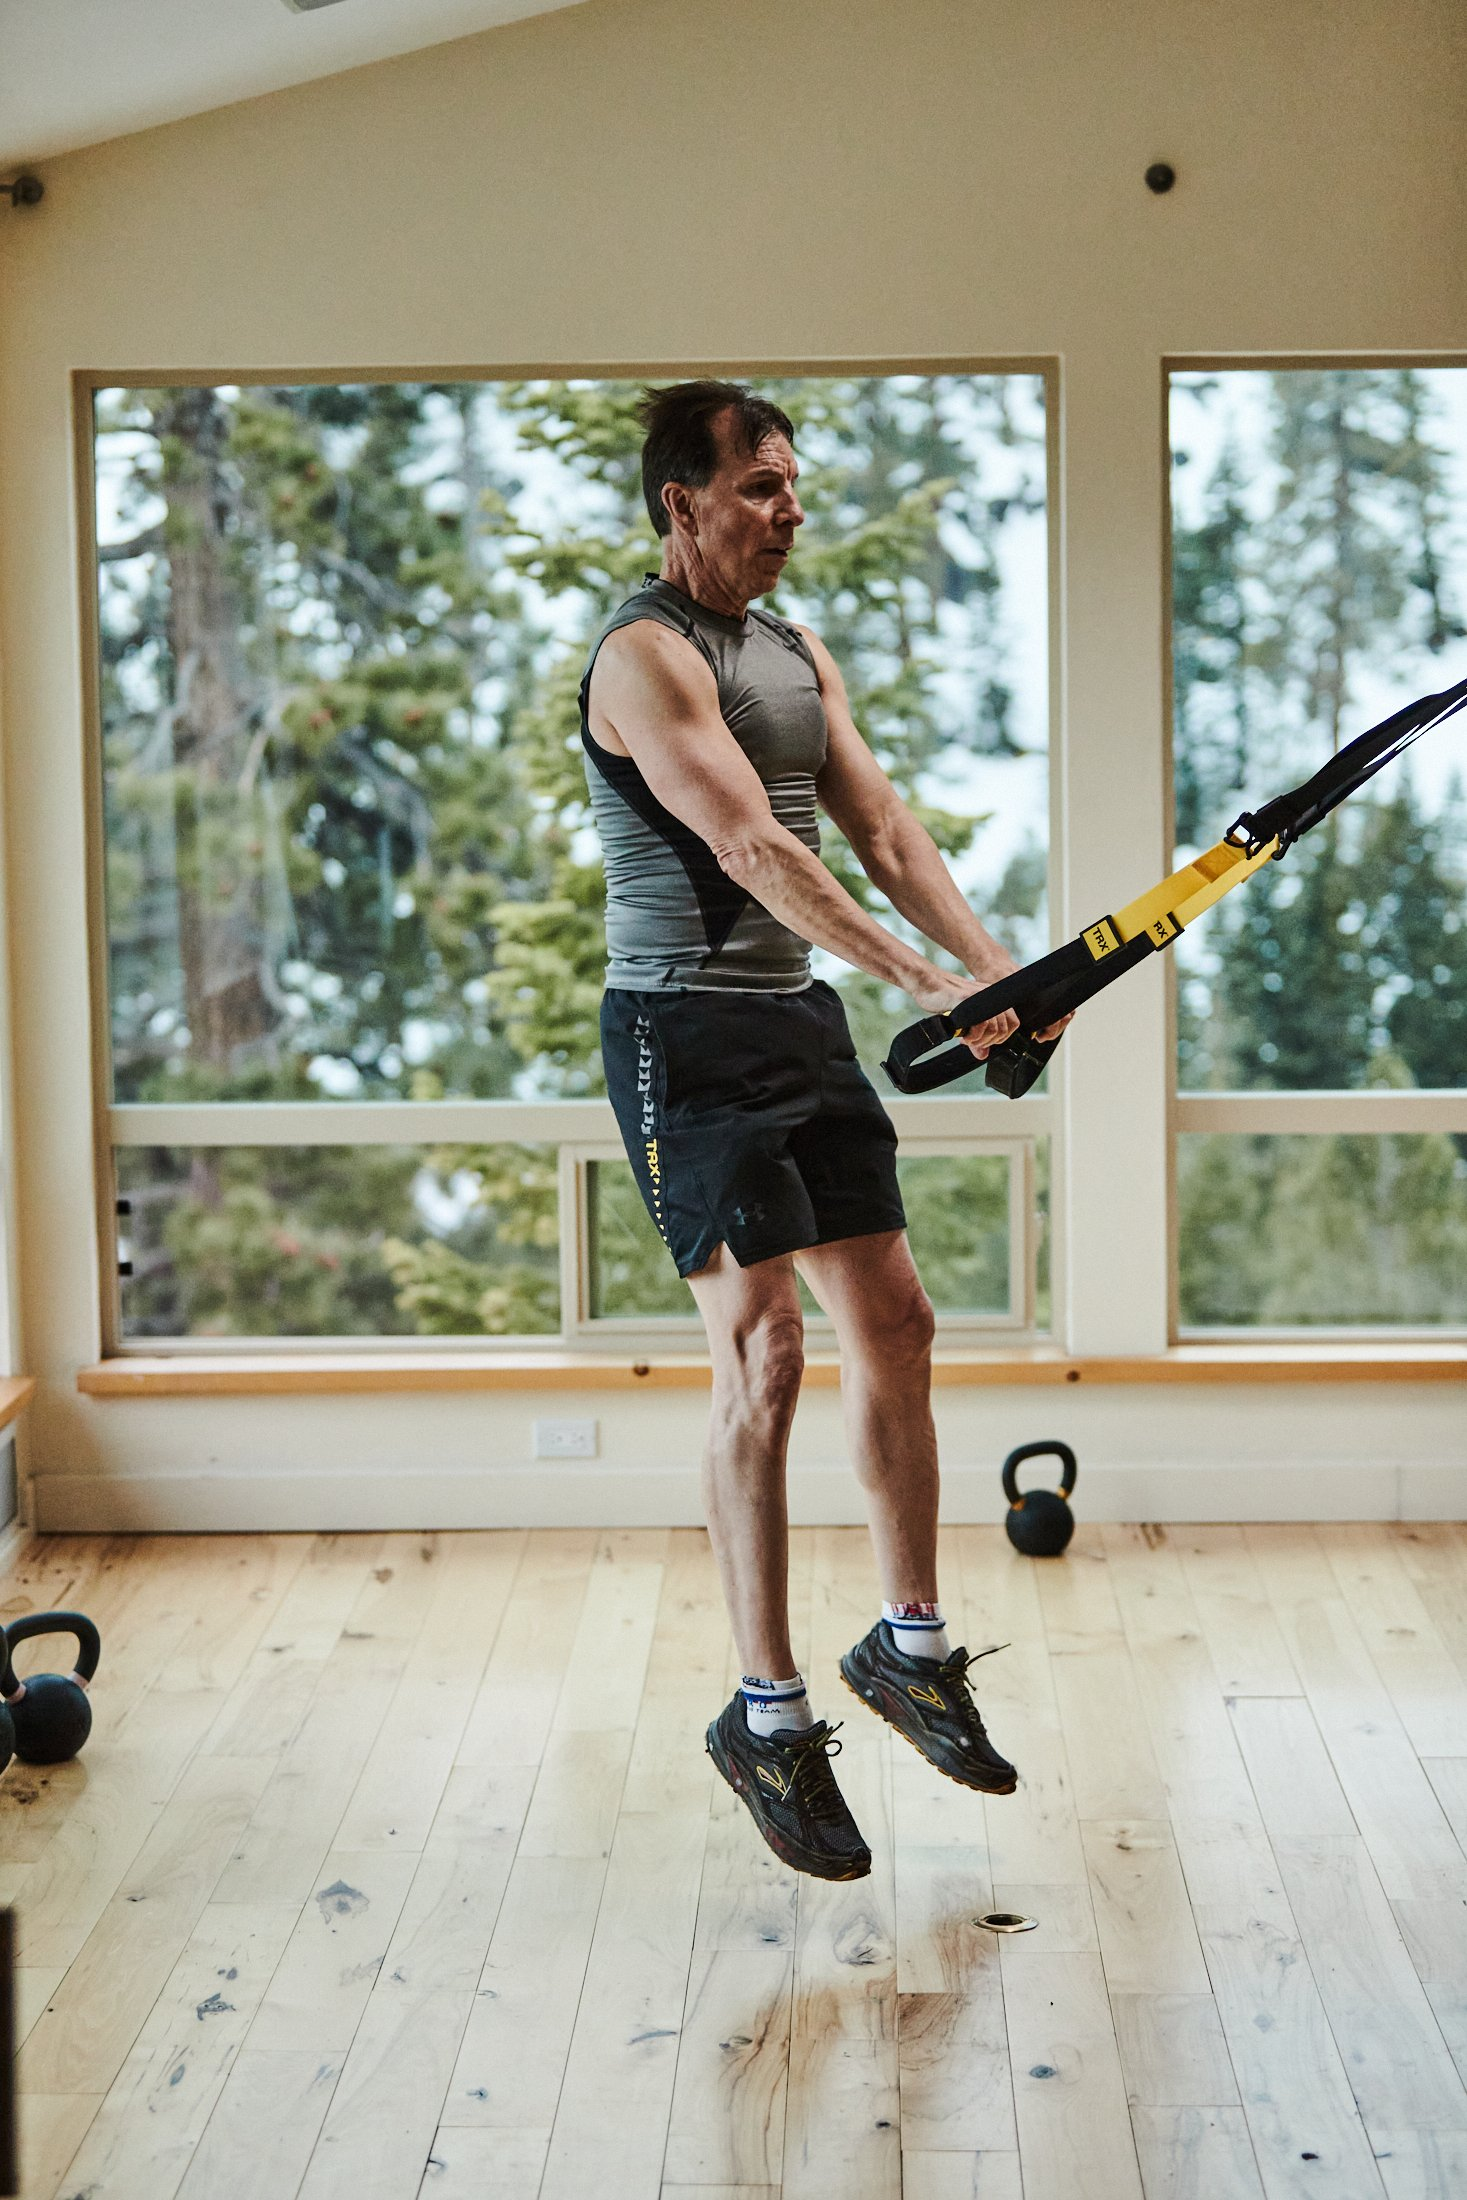 Walt Raineri, wearing a grey sleevess top, black shorts, and black sneakers, does a TRX squat jump. He's in a large room with windows overlooking snowcapped trees.